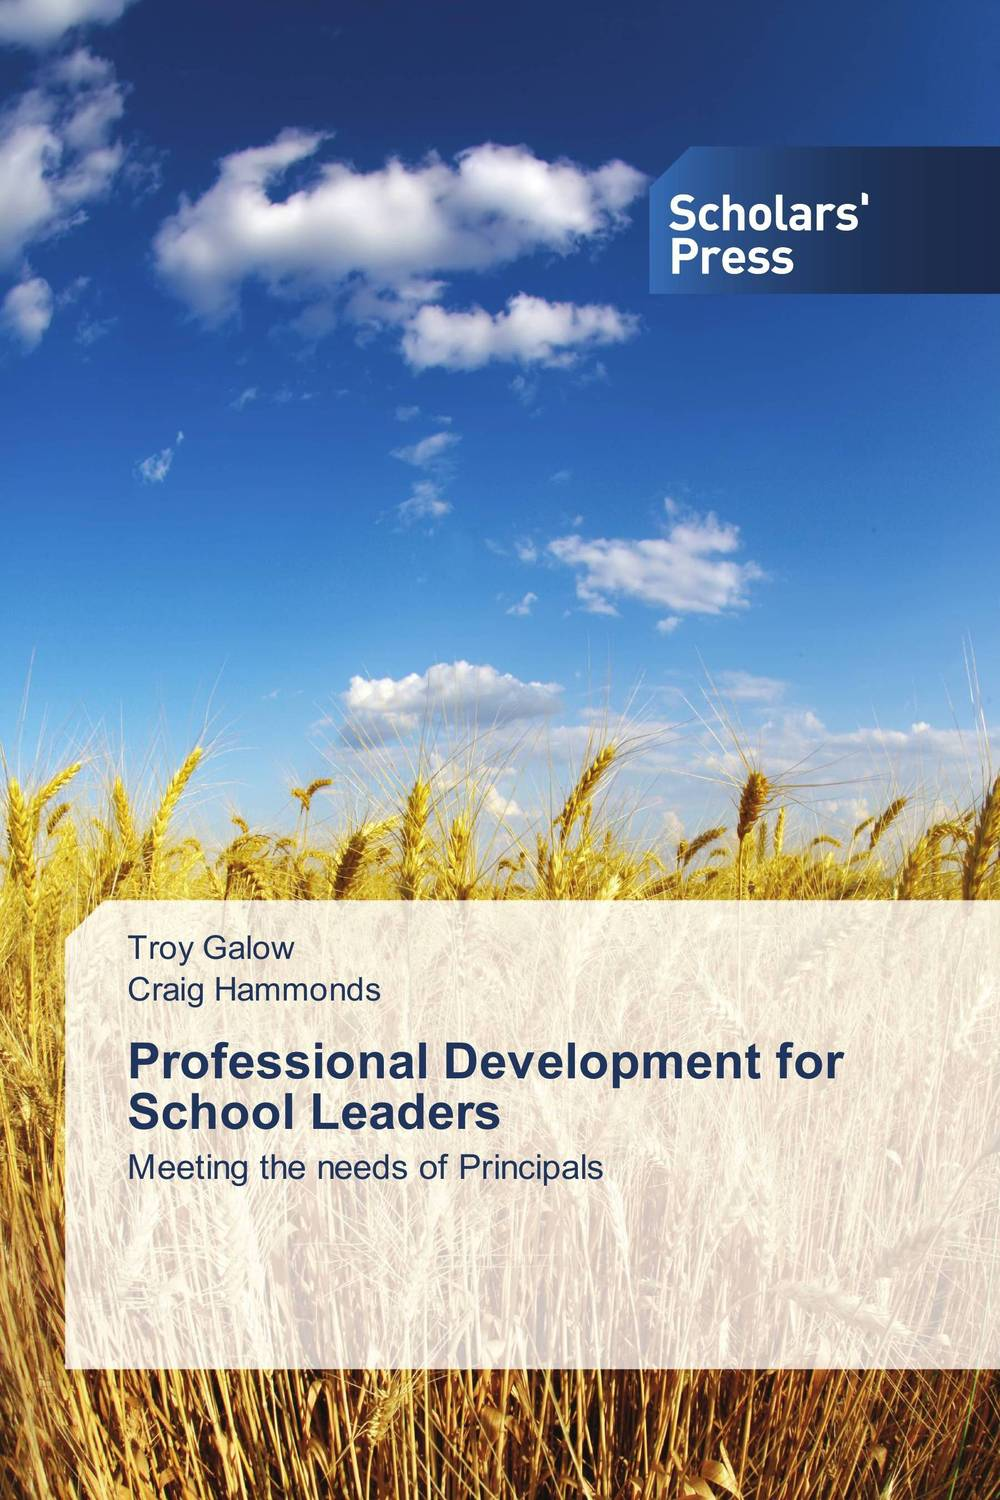 Professional Development for School Leaders the role of evaluation as a mechanism for advancing principal practice